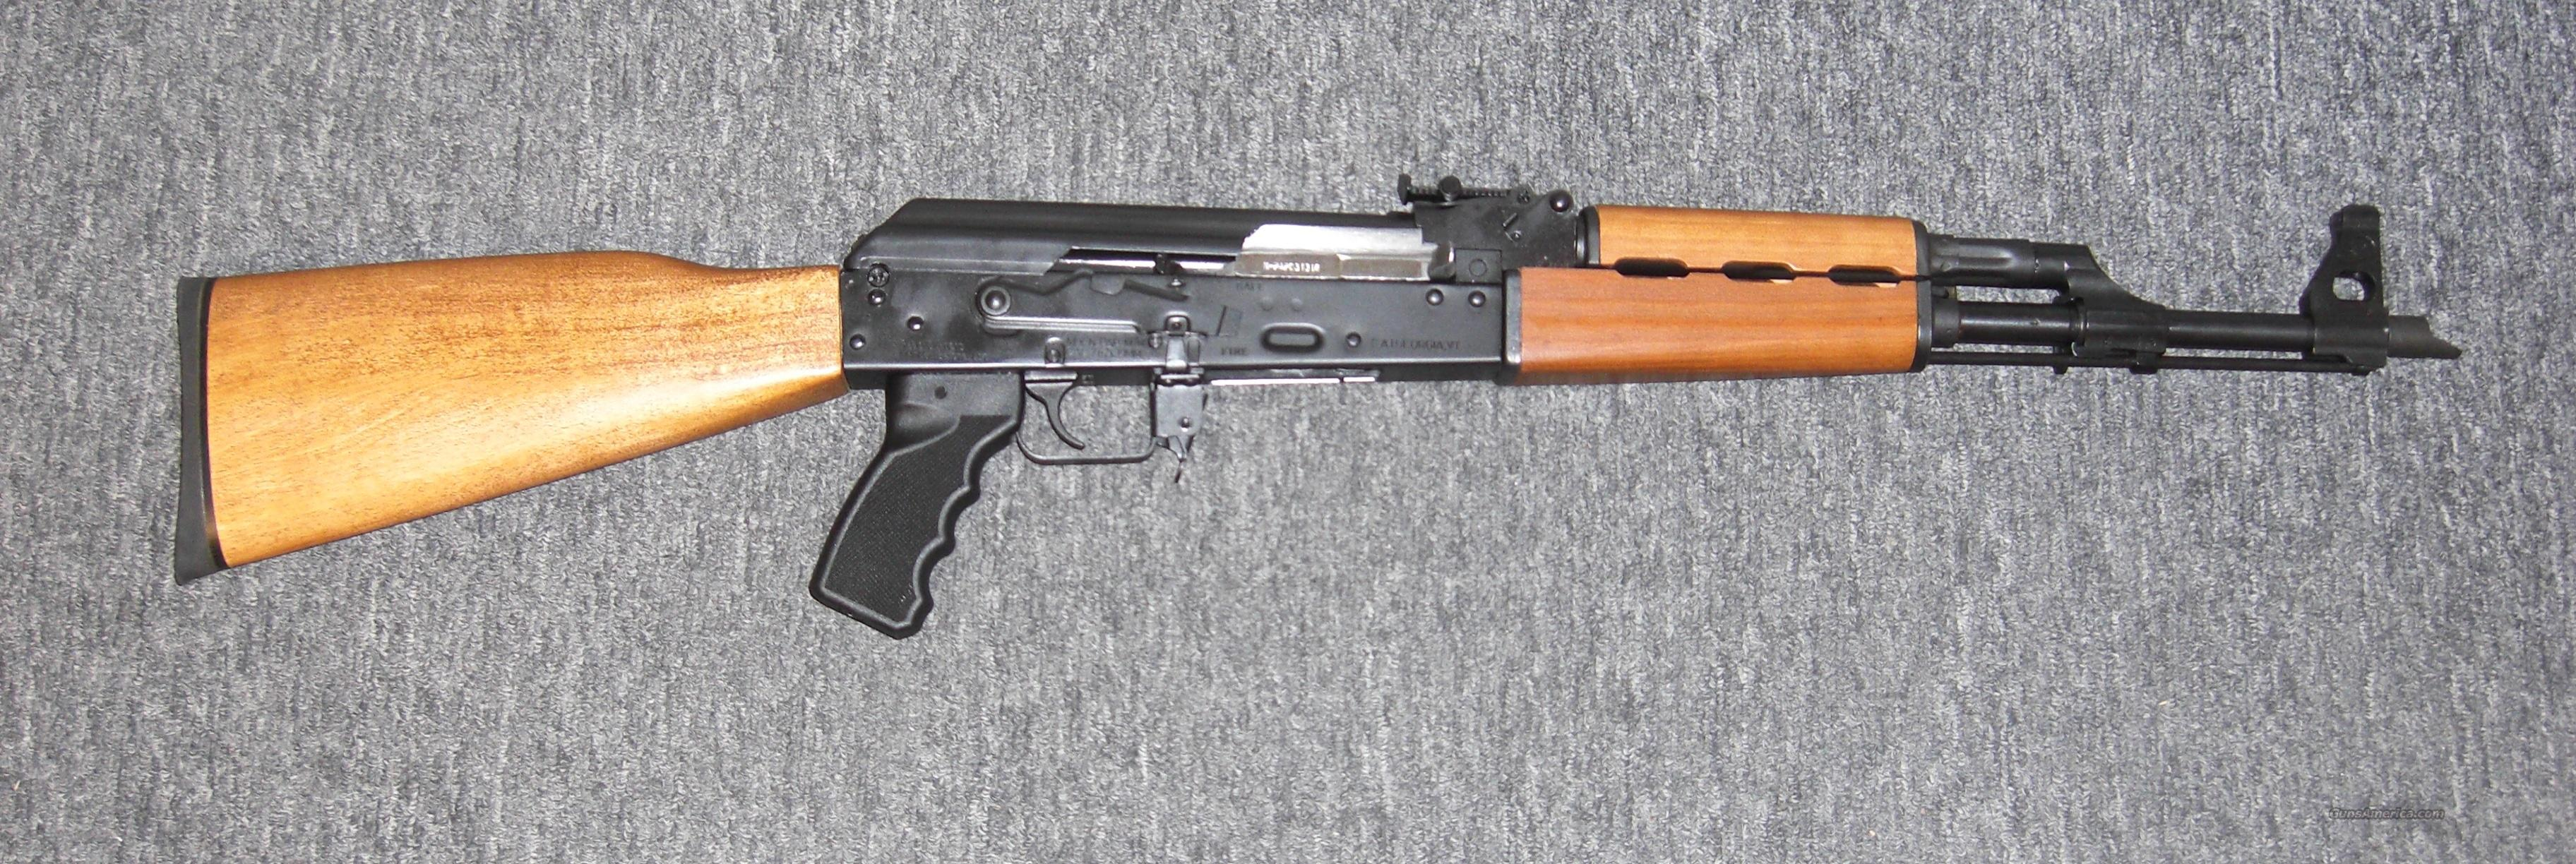 N-PAP M70 wood stock & forearm  Guns > Rifles > Century International Arms - Rifles > Rifles